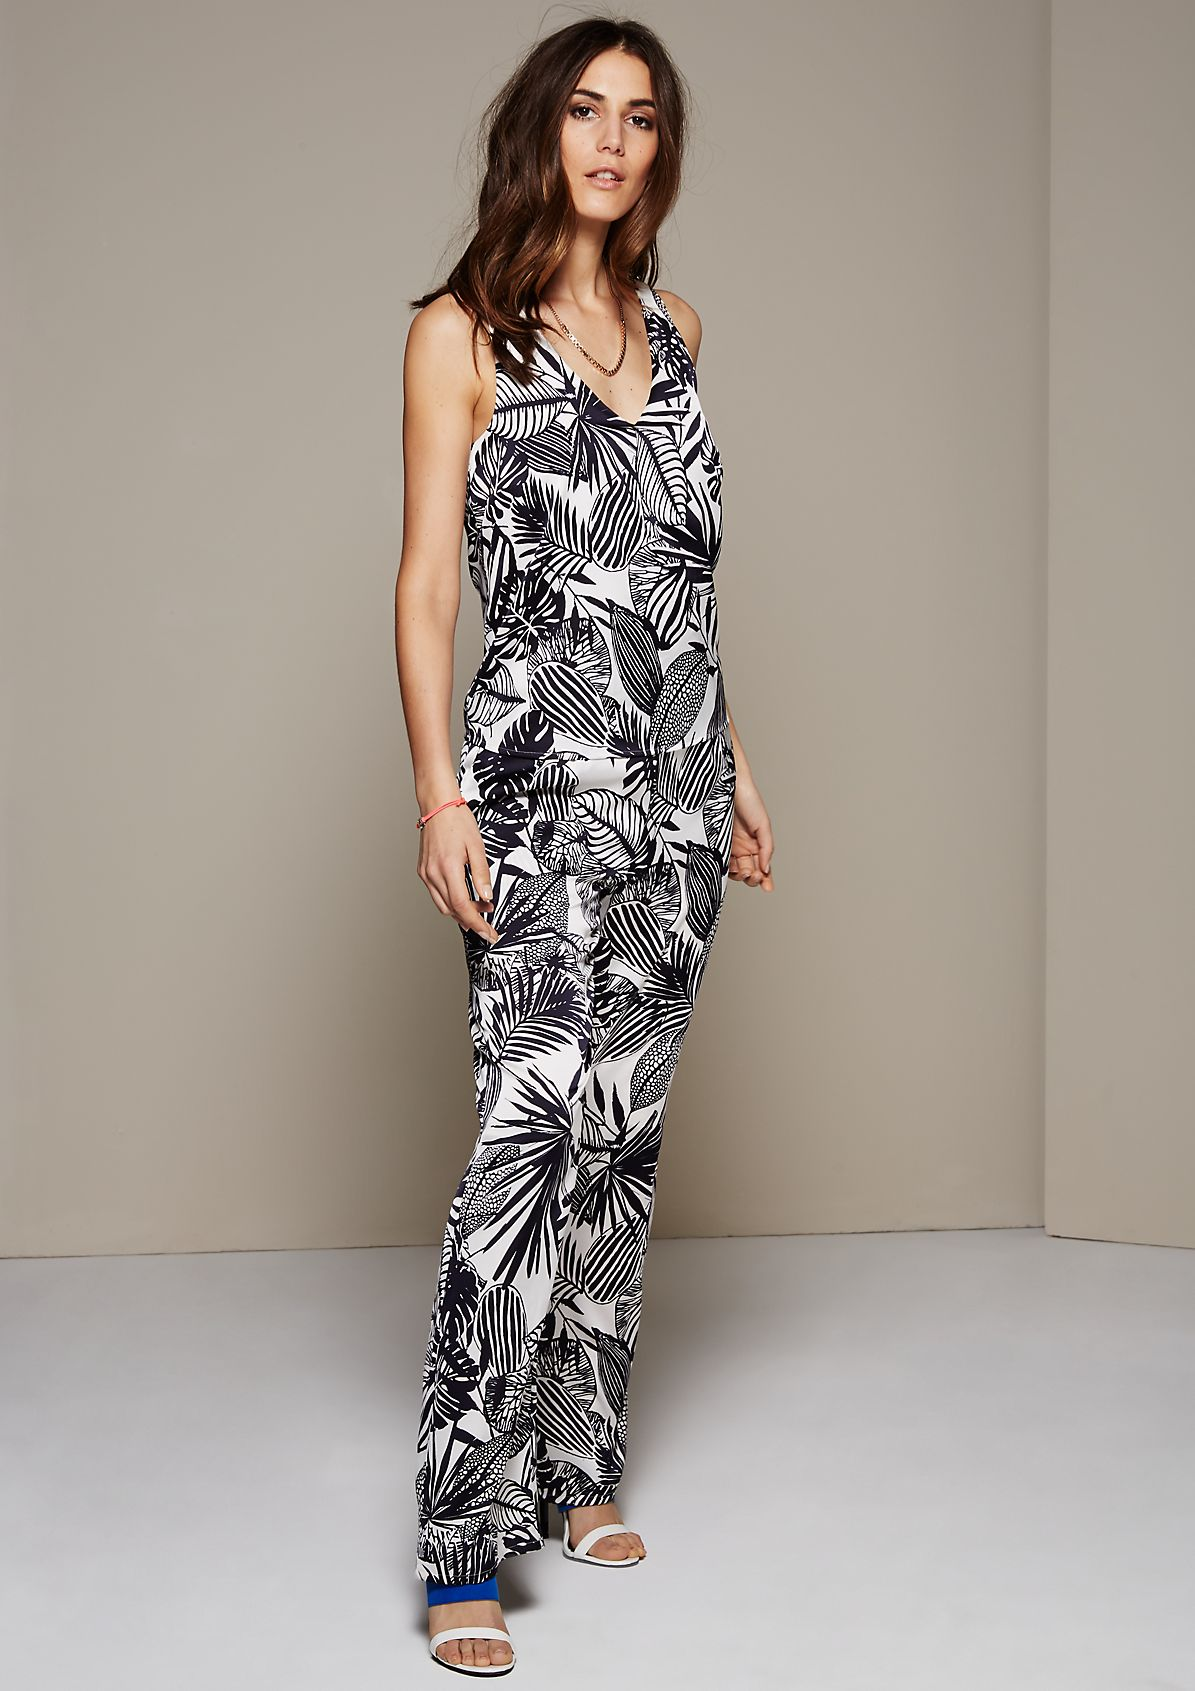 Elegant satin jumpsuit with a wonderful pattern from s.Oliver